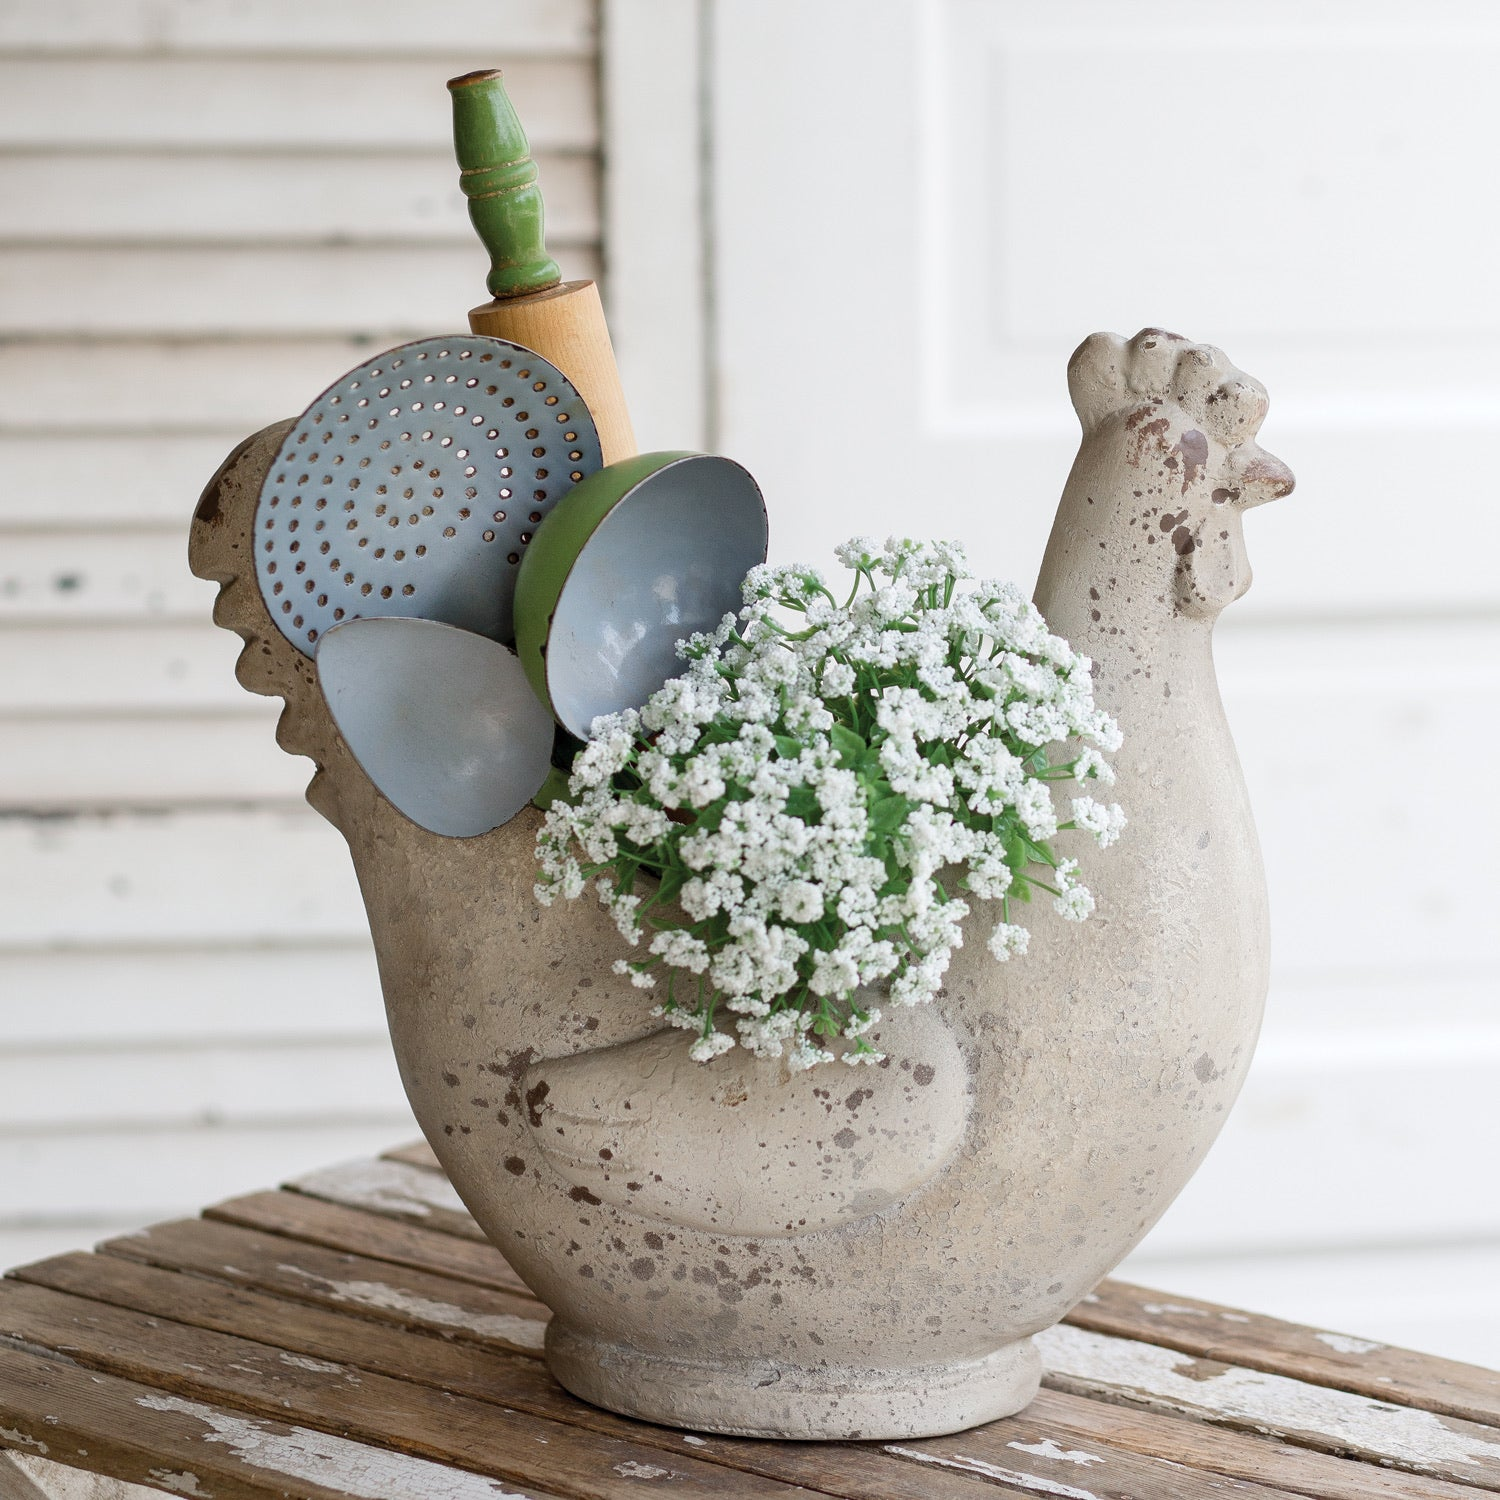 Lovely Hen Planter - ETA 1/15/20